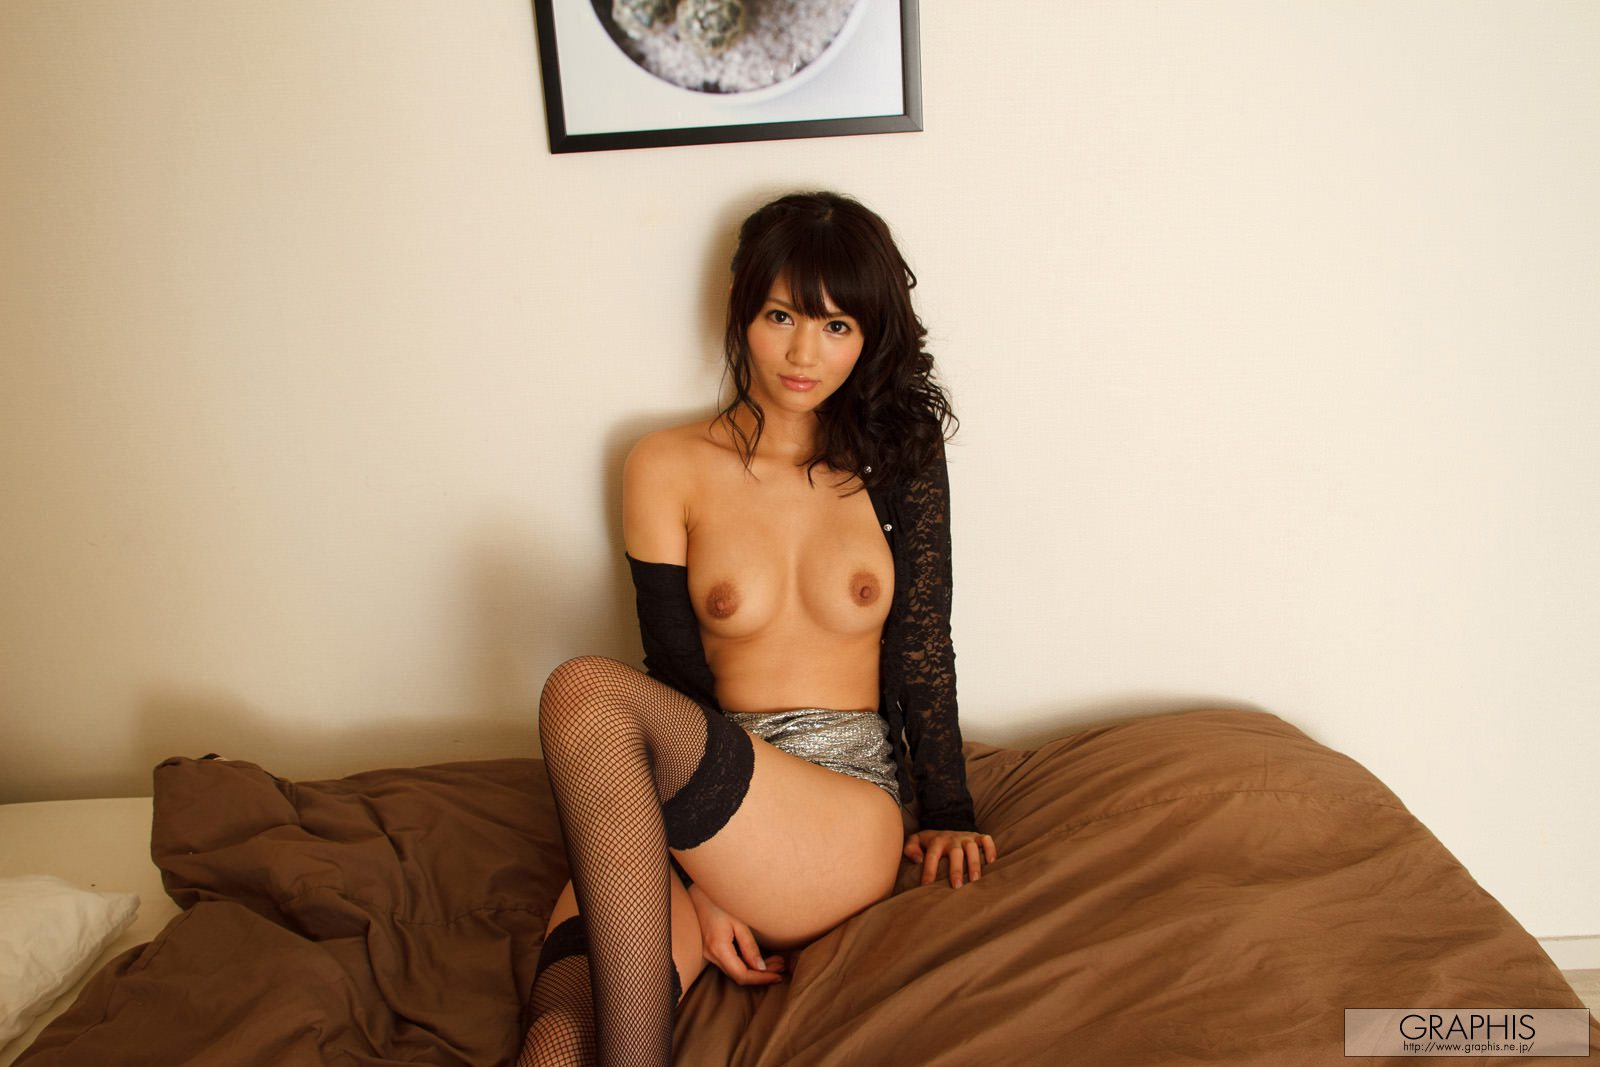 nozomi-aso-fishnet-stockings-nude-graphis-03